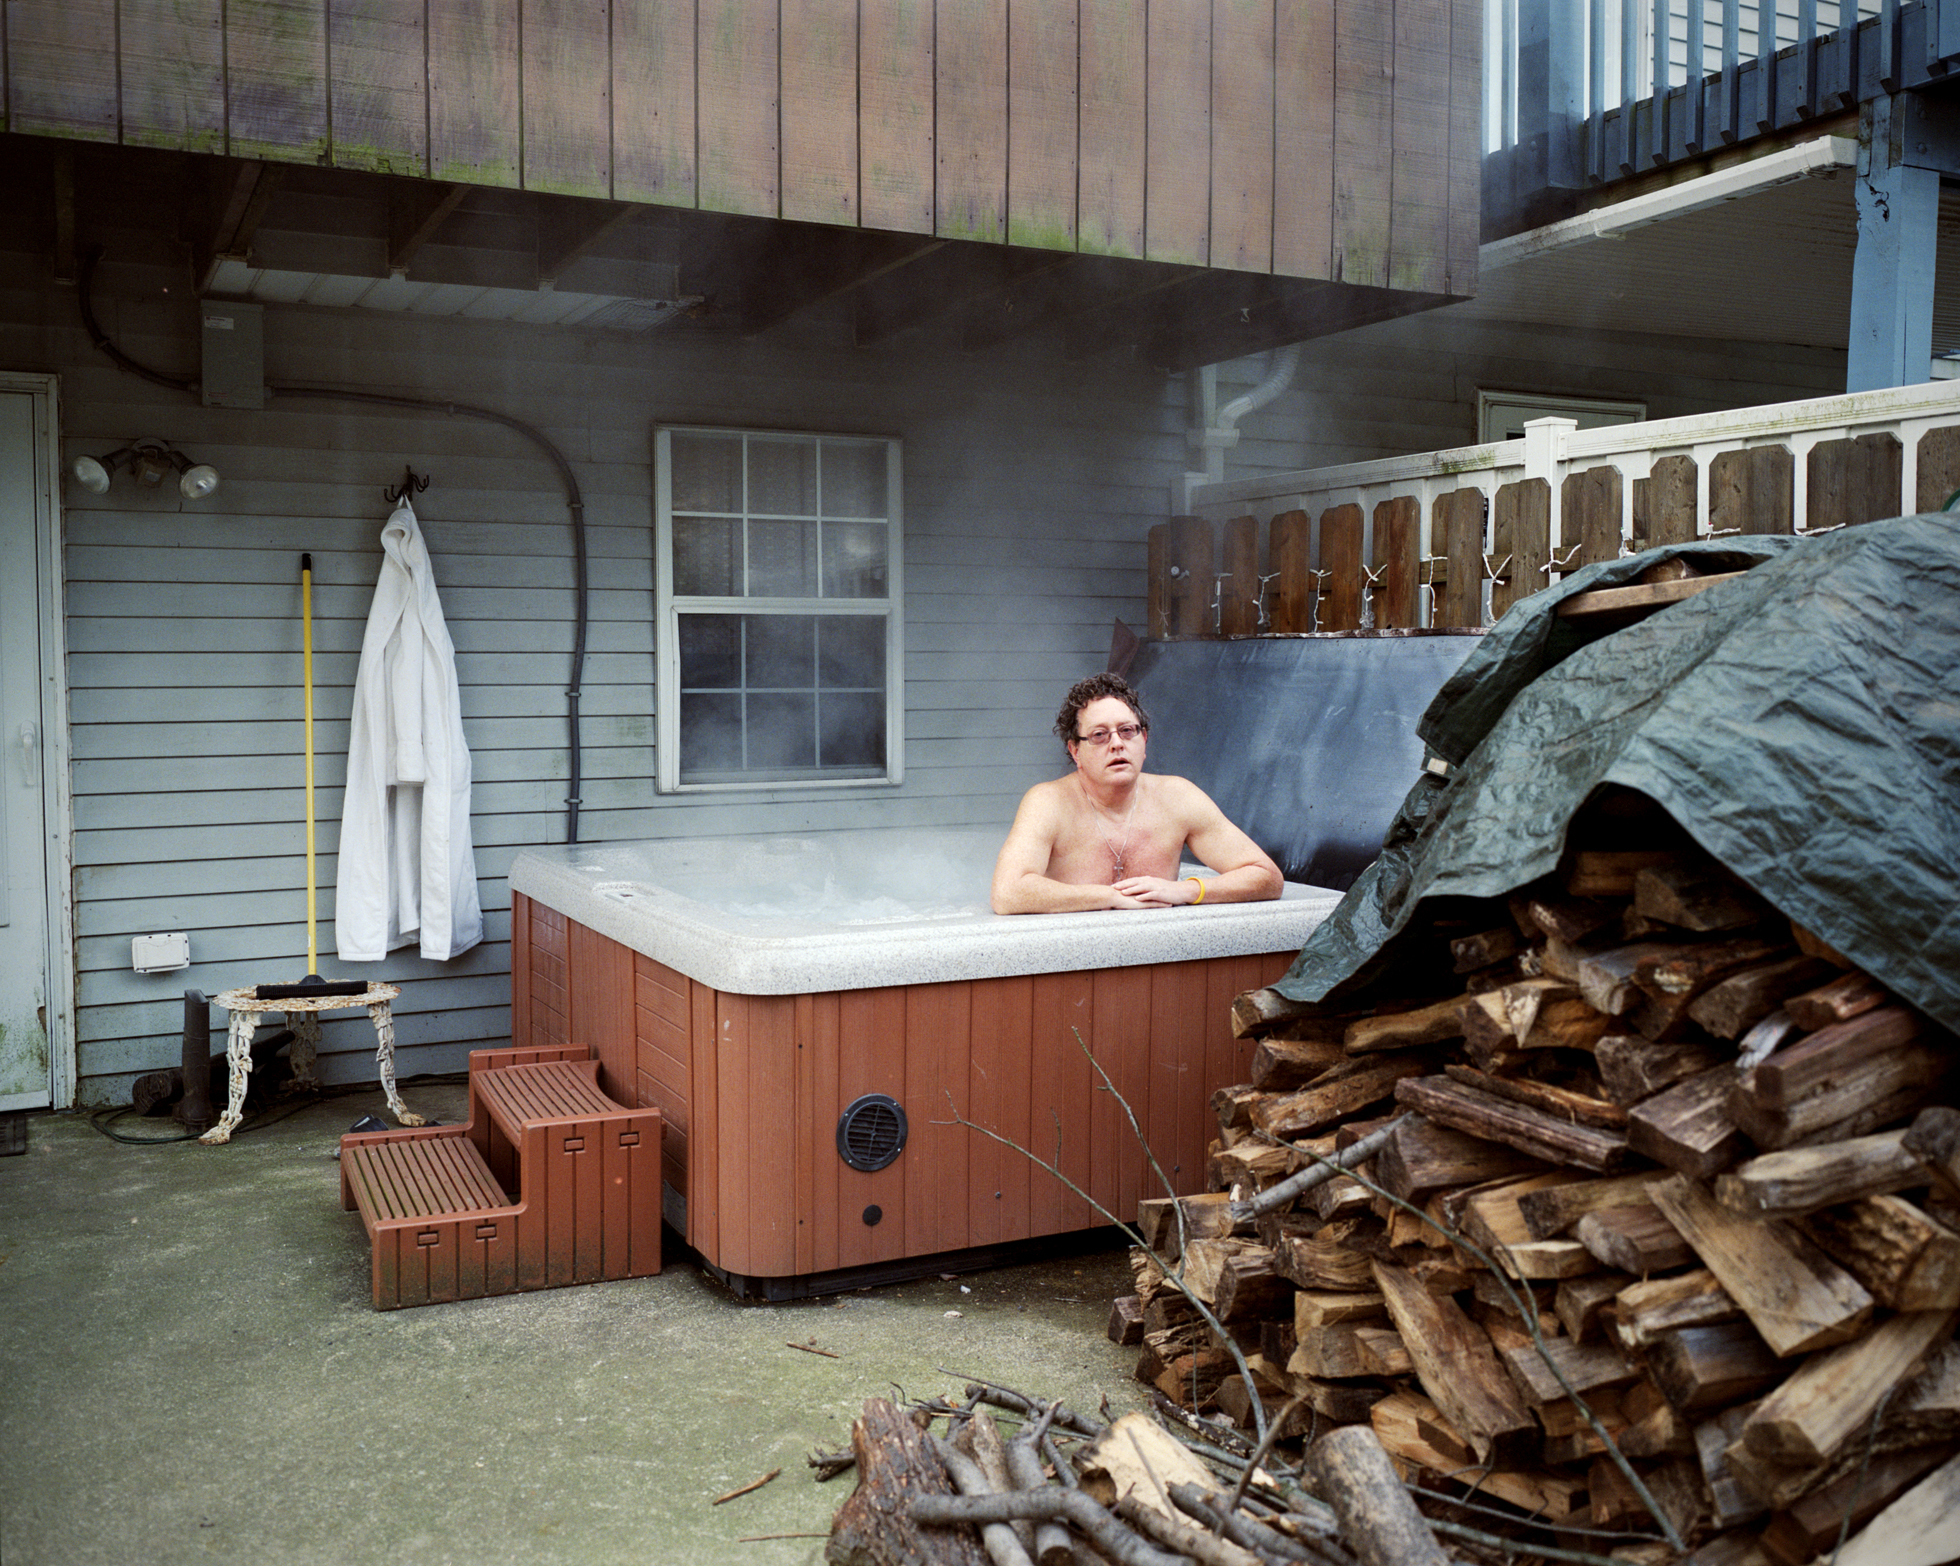 A picture of a guy inside a jacuzzi